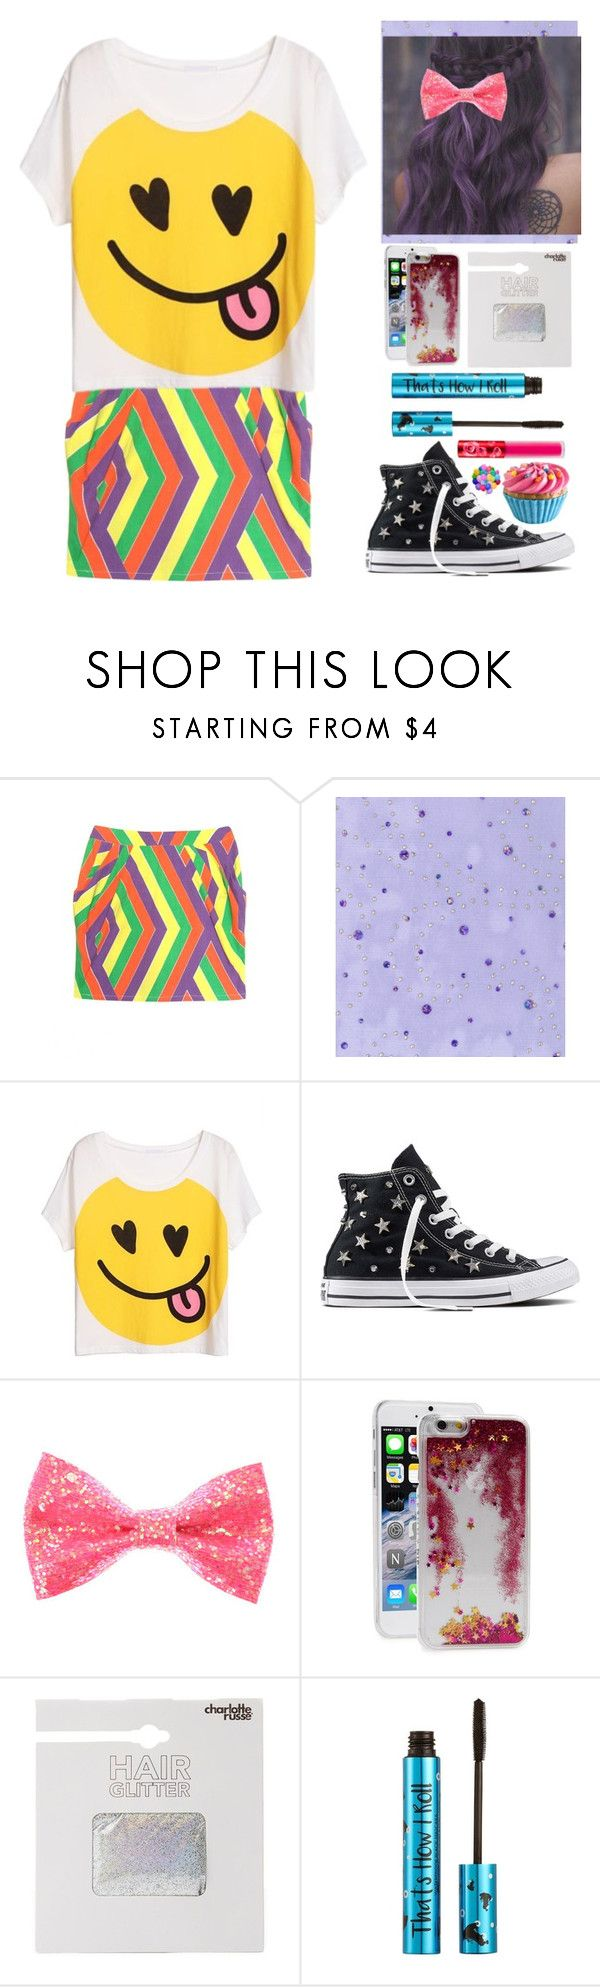 """The heart of the party"" by aby-ocampo ❤ liked on Polyvore featuring ReLuxe, Converse, Skinnydip, Charlotte Russe, Barry M, Lime Crime and Dylan's Candy Bar"